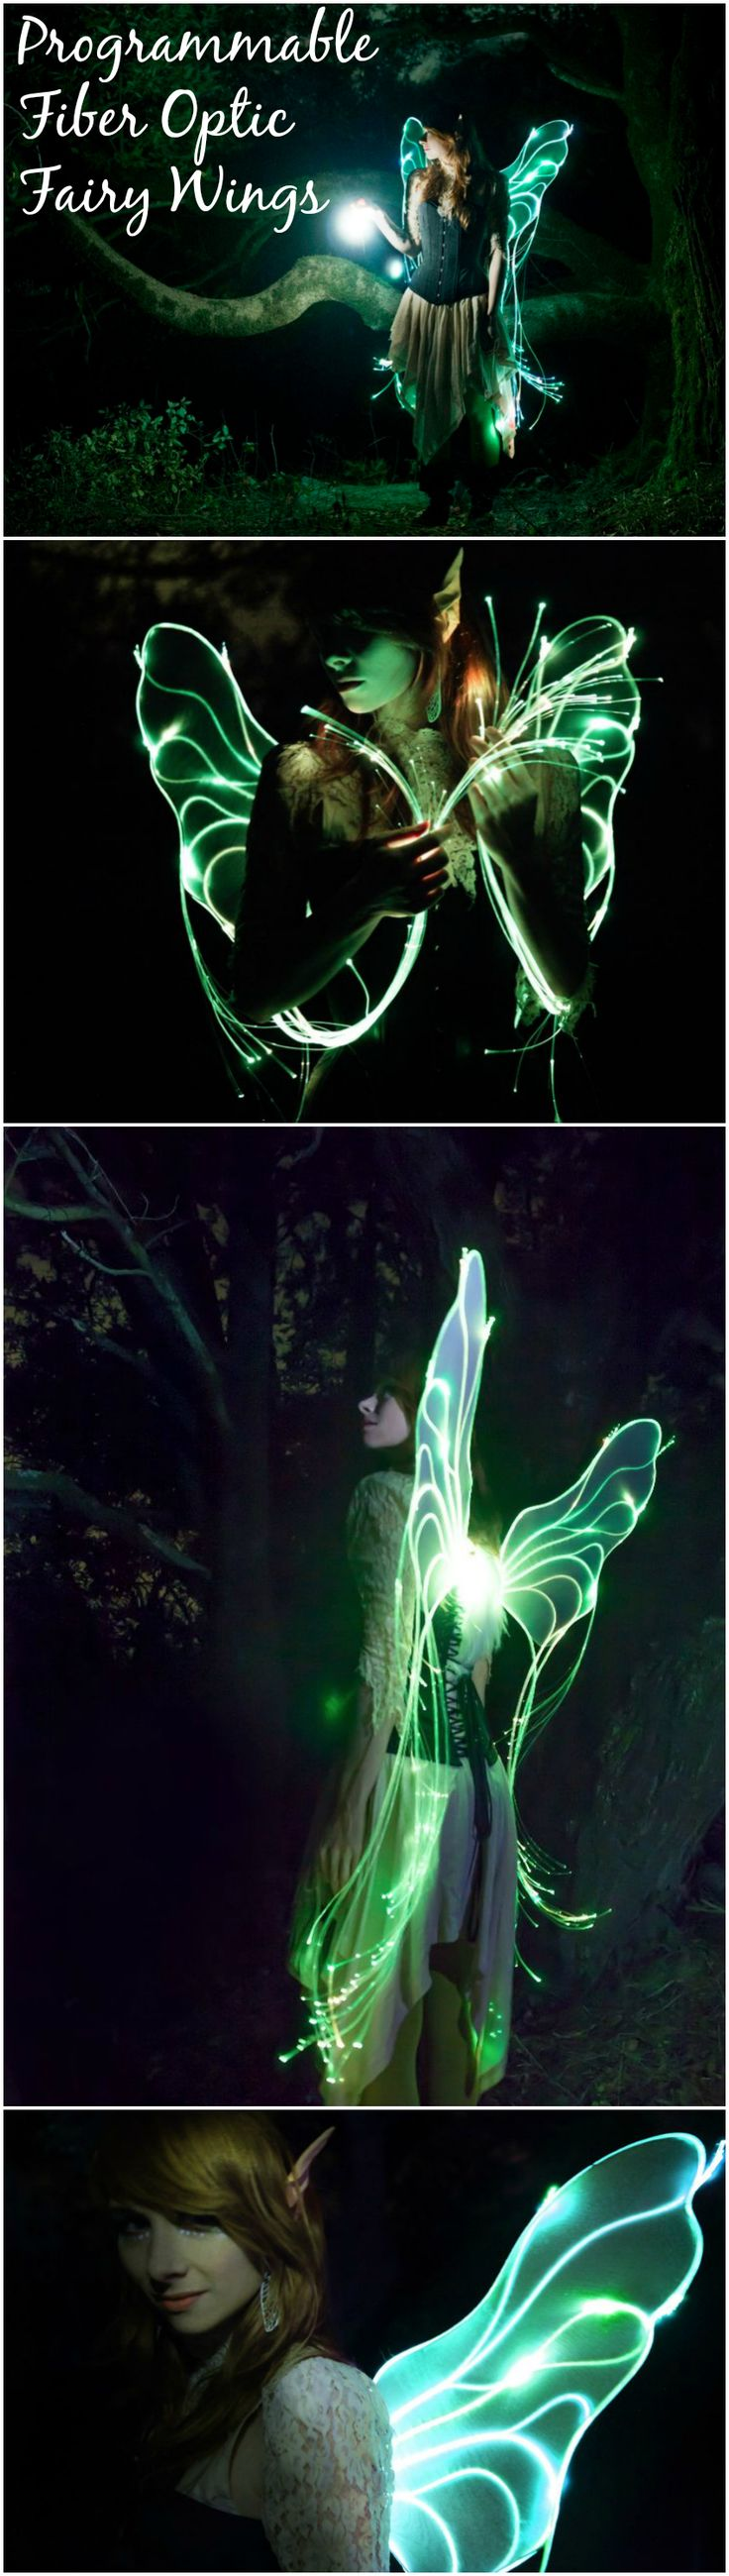 Programmable Fiber Optic Fairy Wings Déguisement femme - elfe - fée - ailes lumineuses - conte de fée - robe - halloween - carnaval - fête - anniversaire - birthday - party cosplay